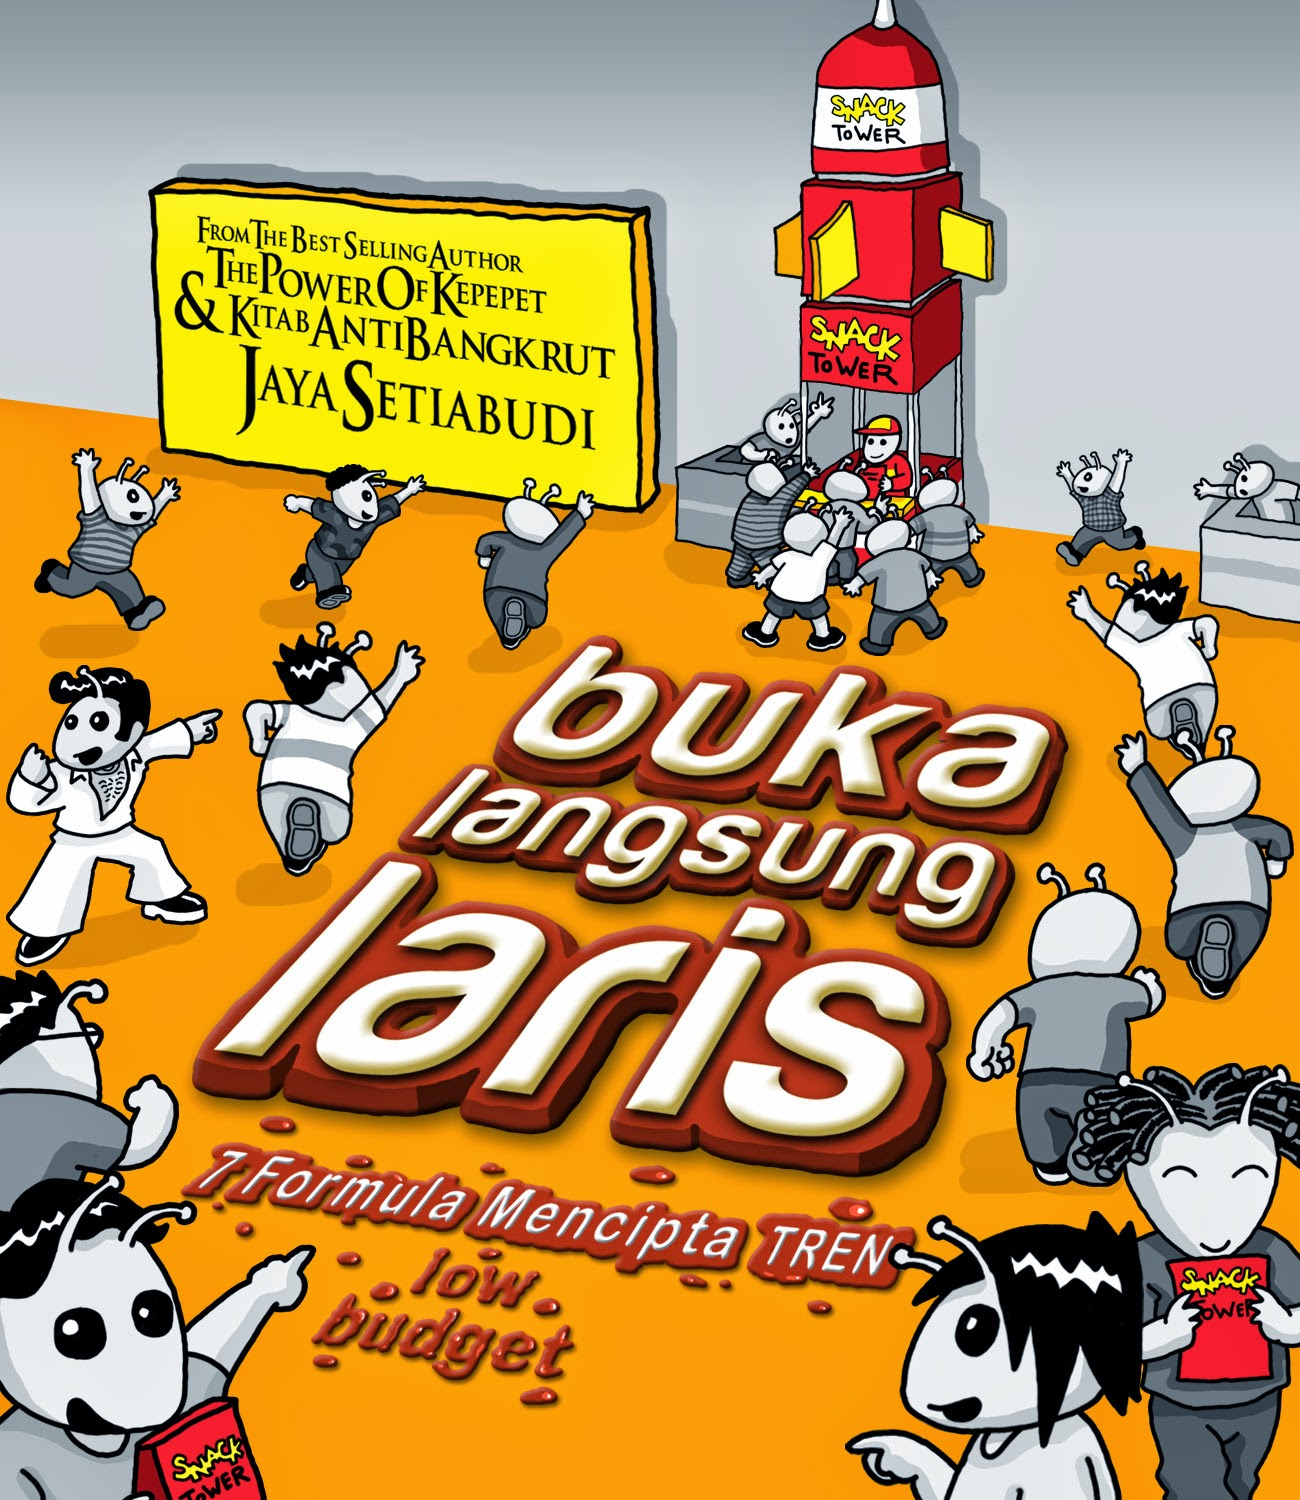 Photo of Ebook Buka Langsung Laris